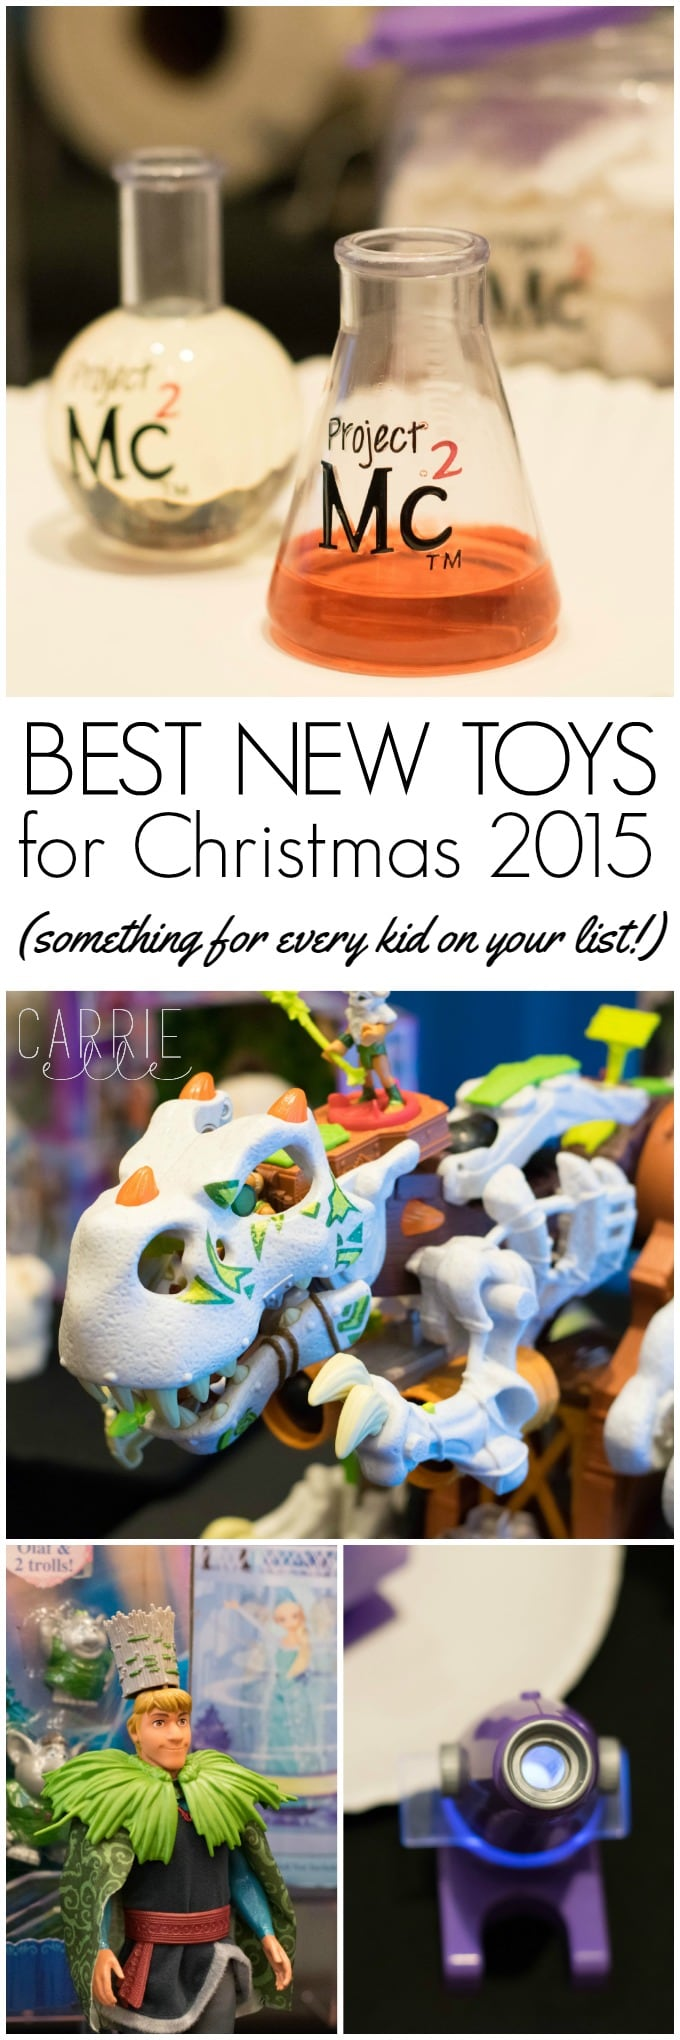 Best Toys For Teenagers : Best toys for kids christmas carrie elle